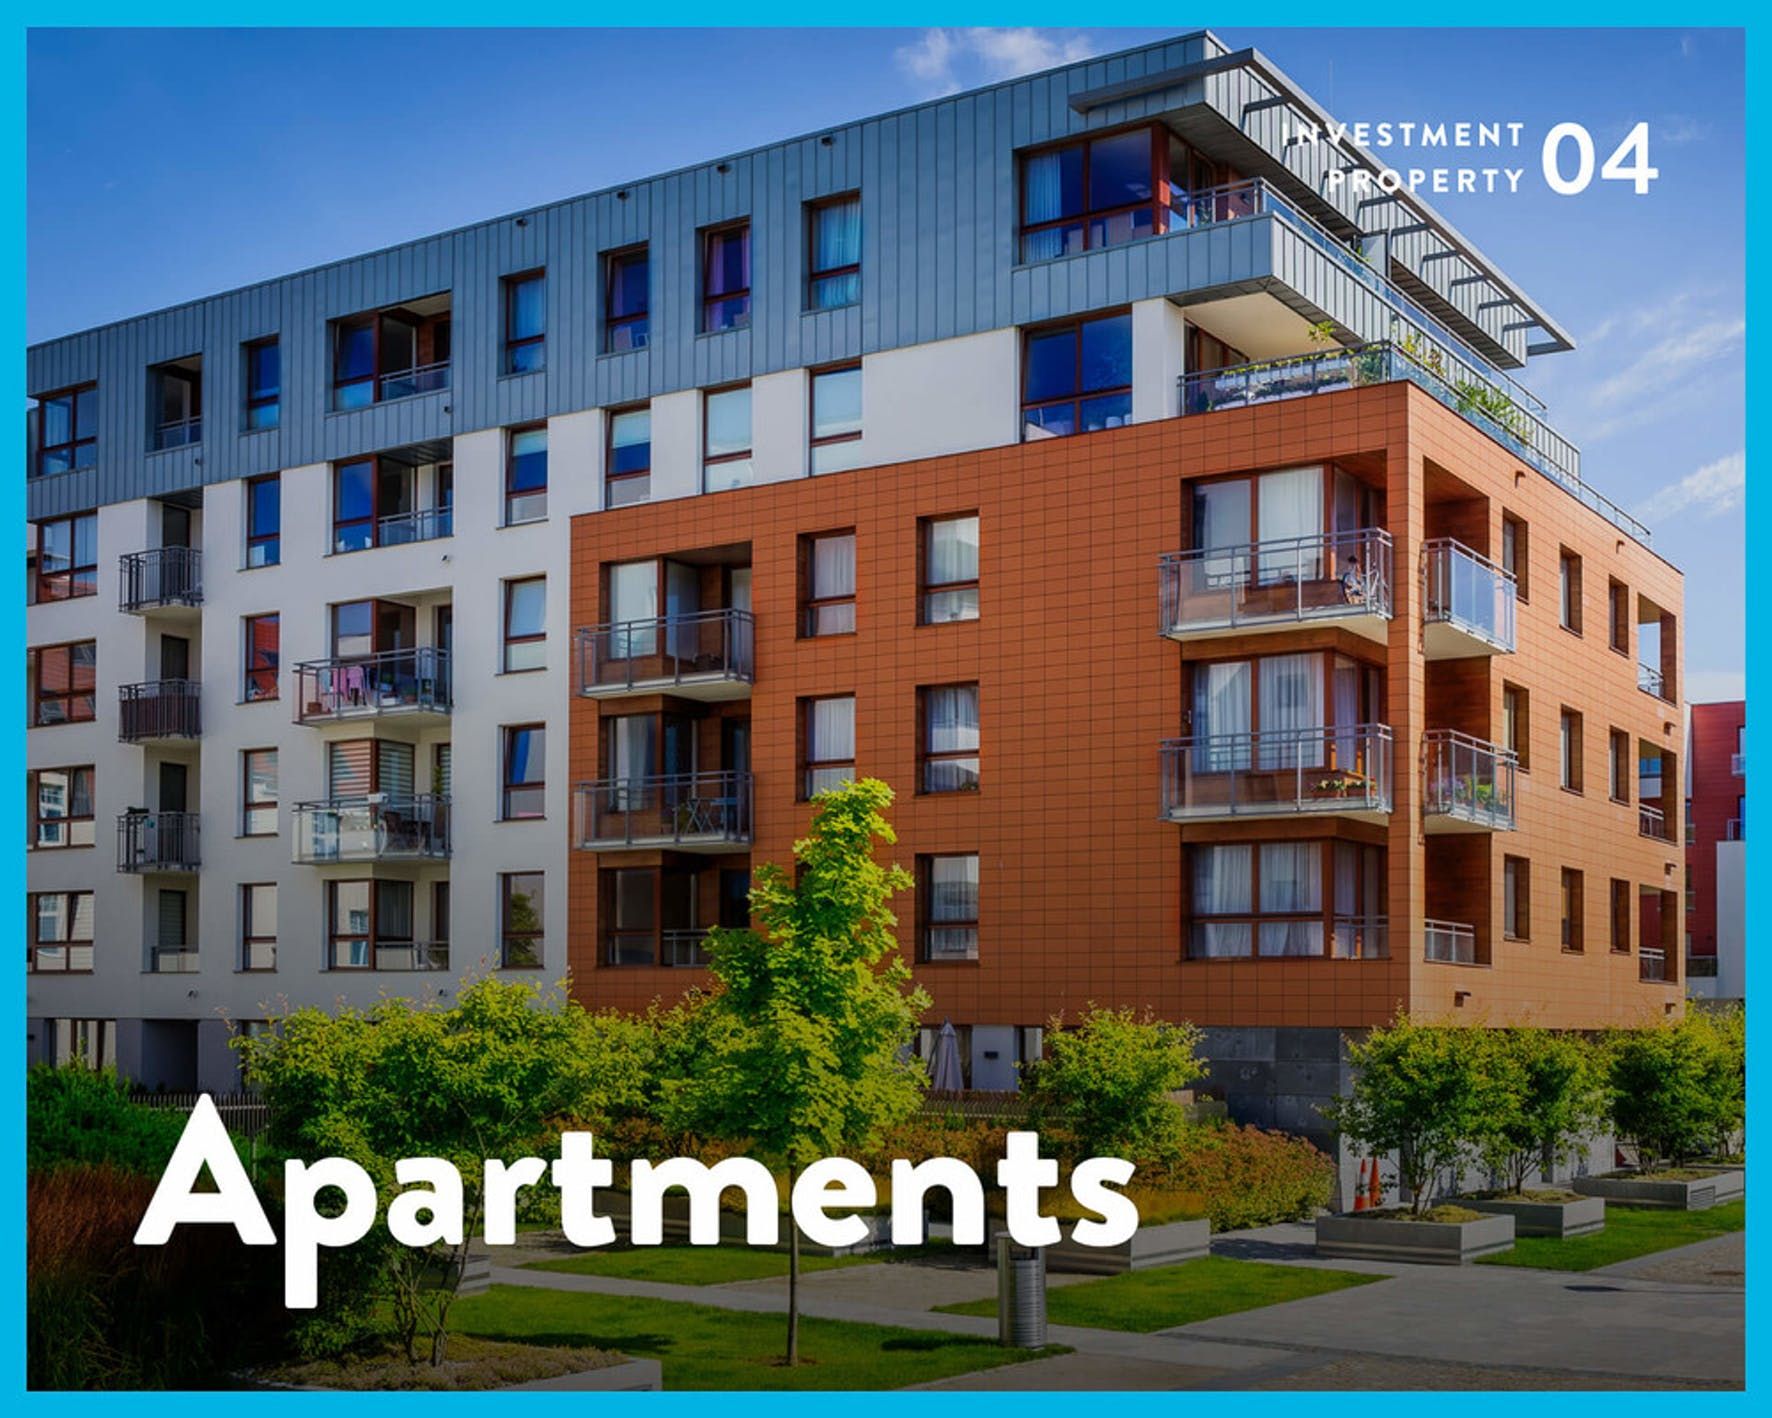 Real estate investments - apartments